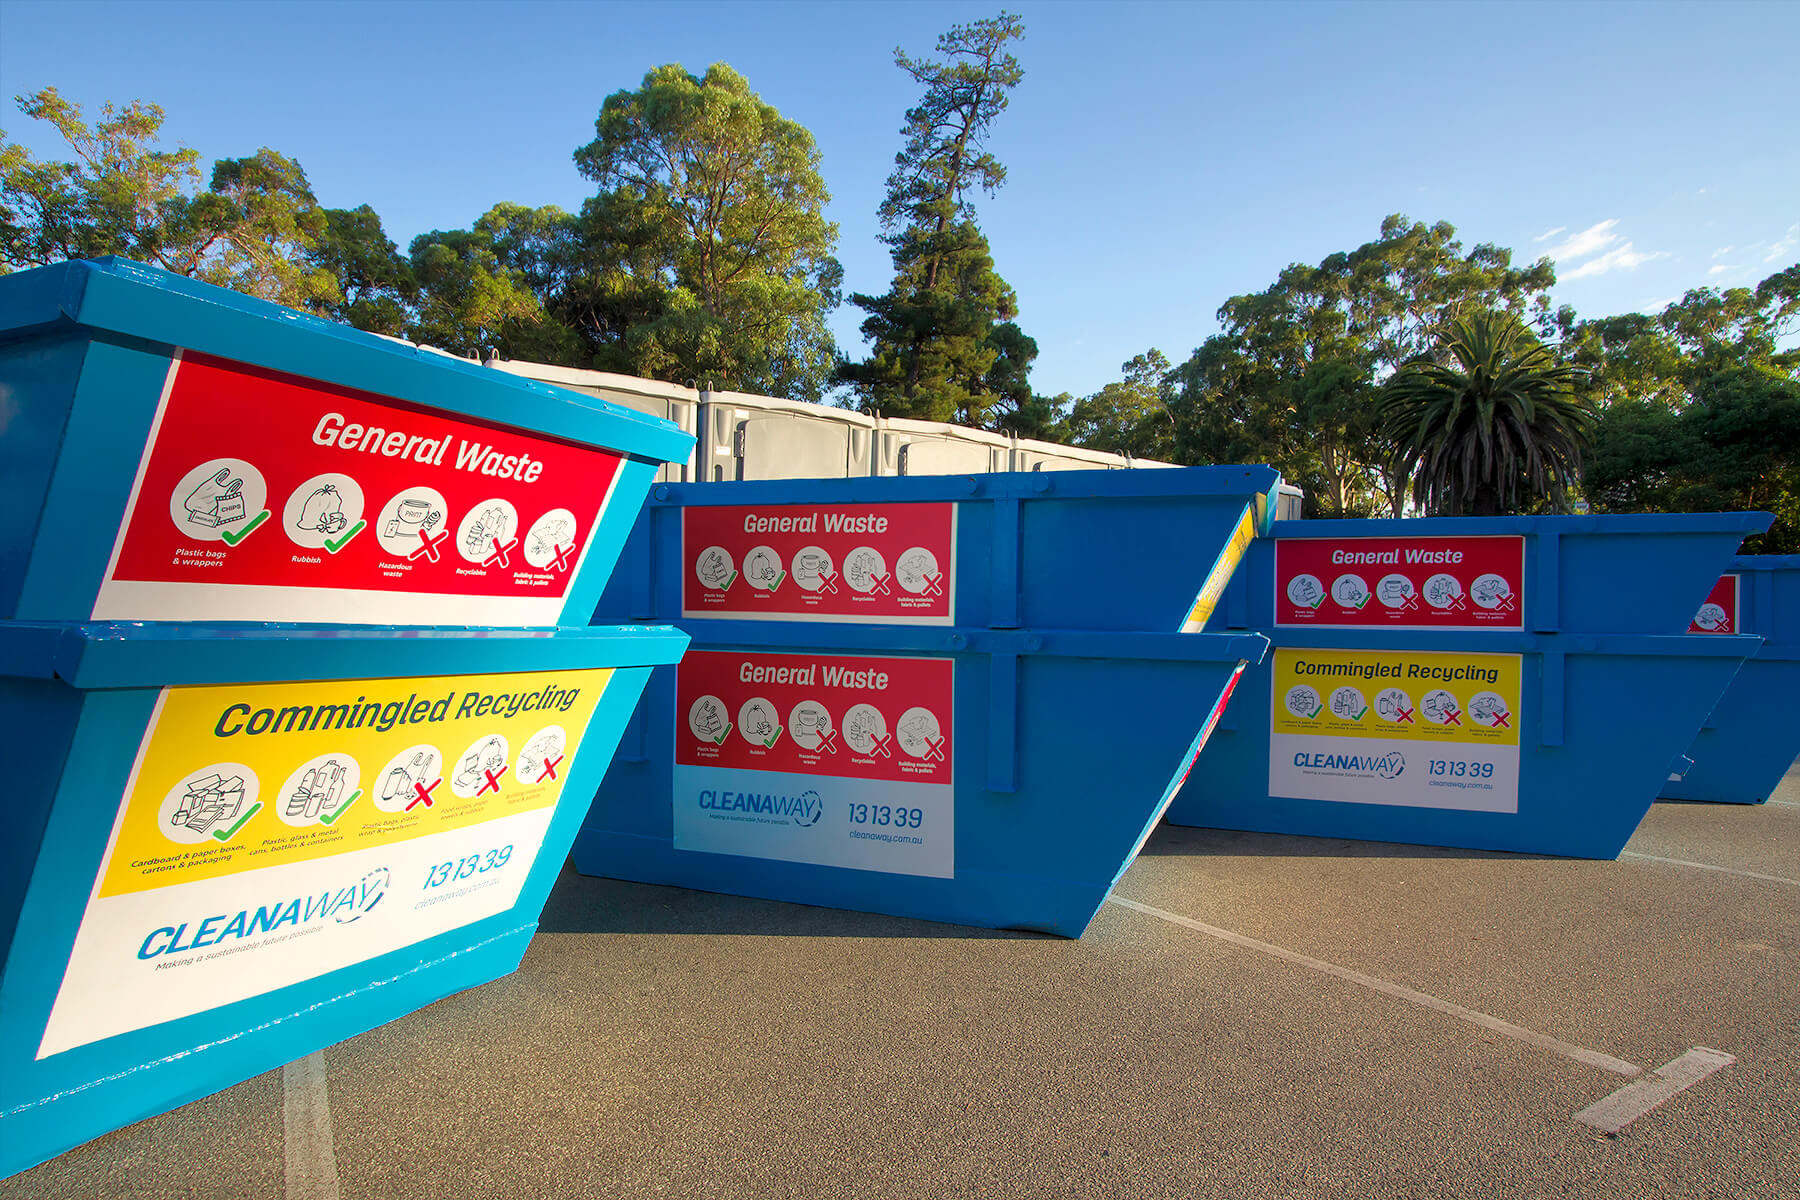 Cleanaway skips divided into purposes